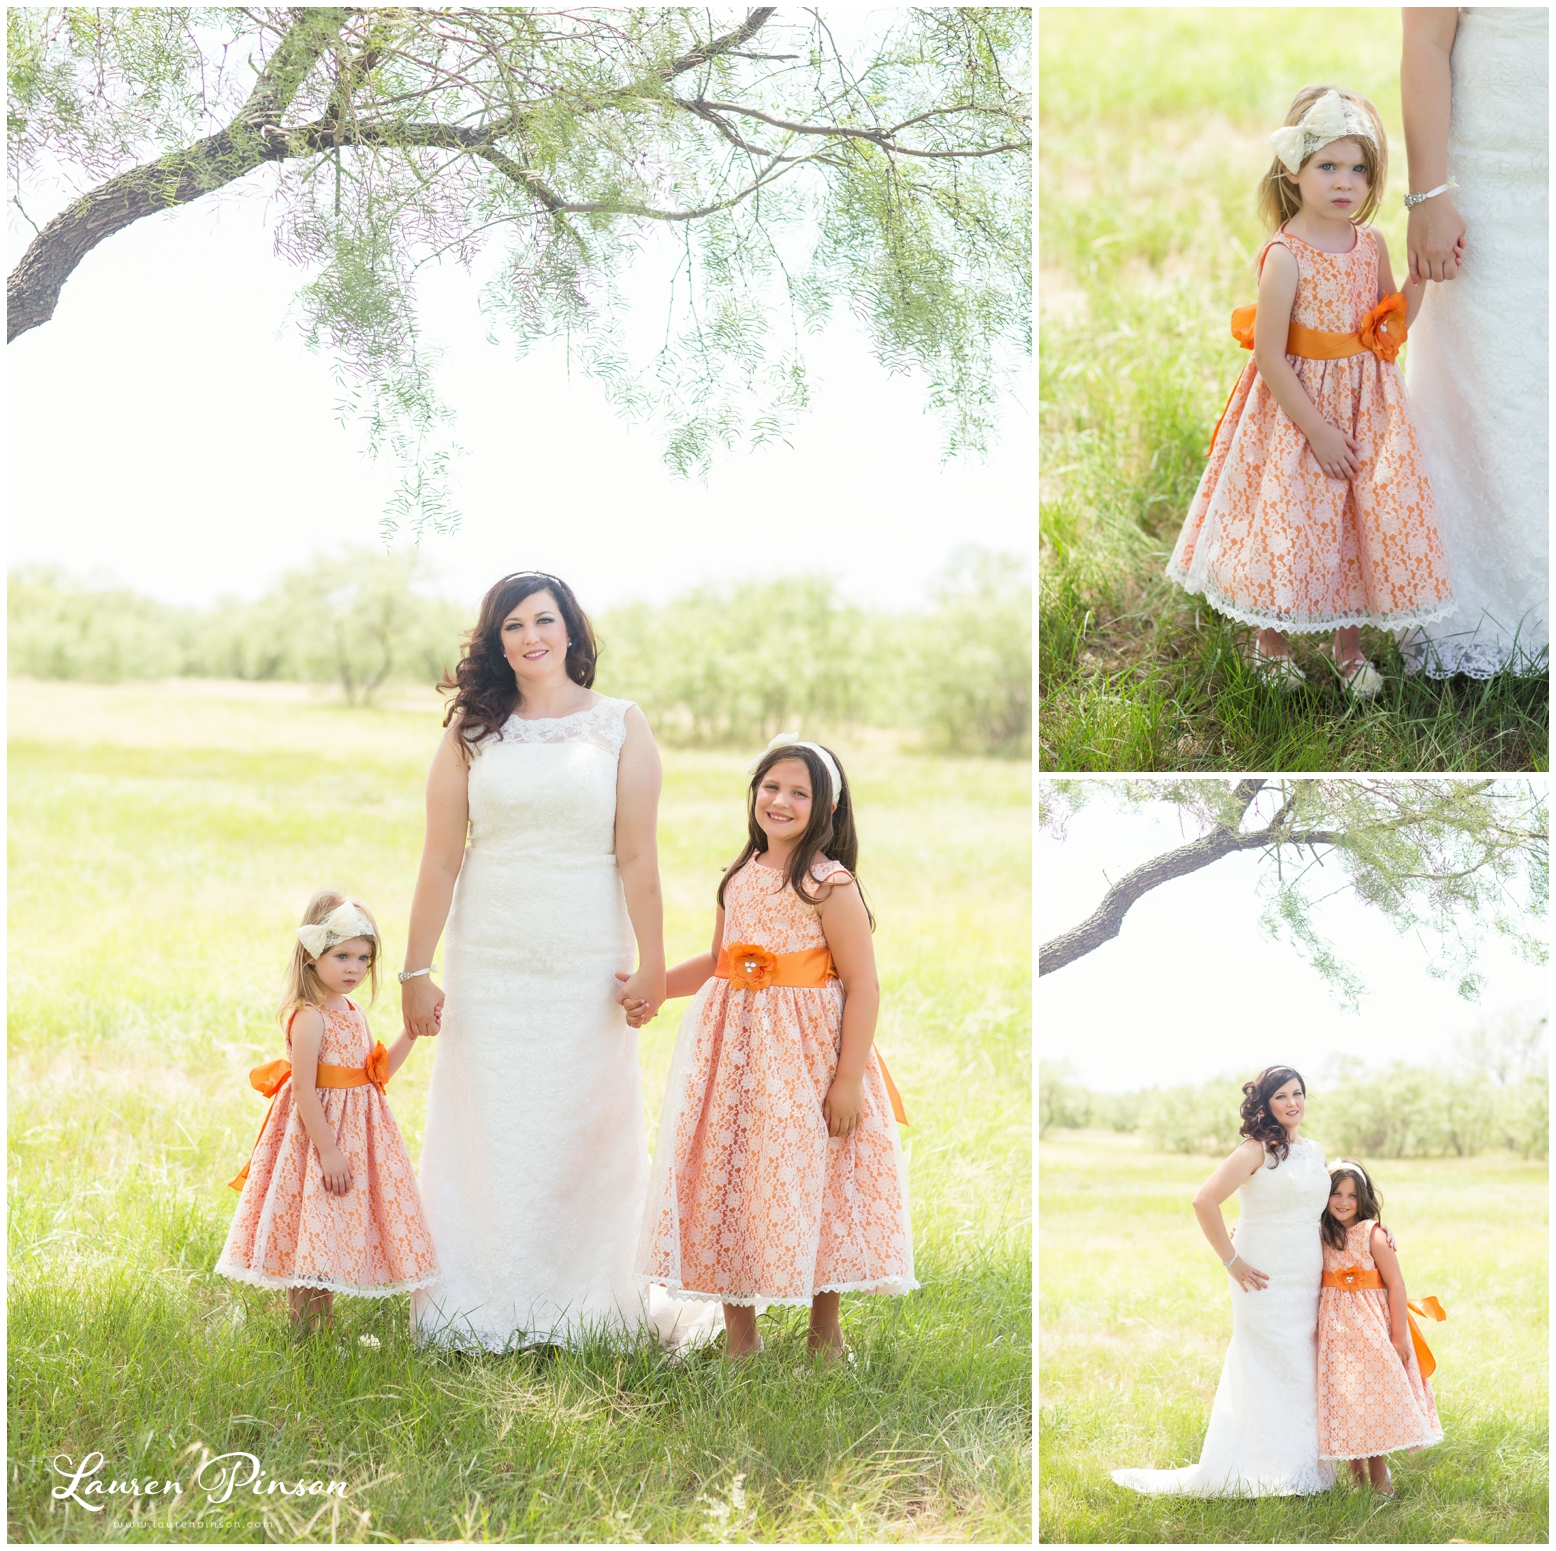 wichita-falls-coyote-ranch-resort-wedding-texas-photography-family-ceremony-balloons-rustic-lace_0315.jpg